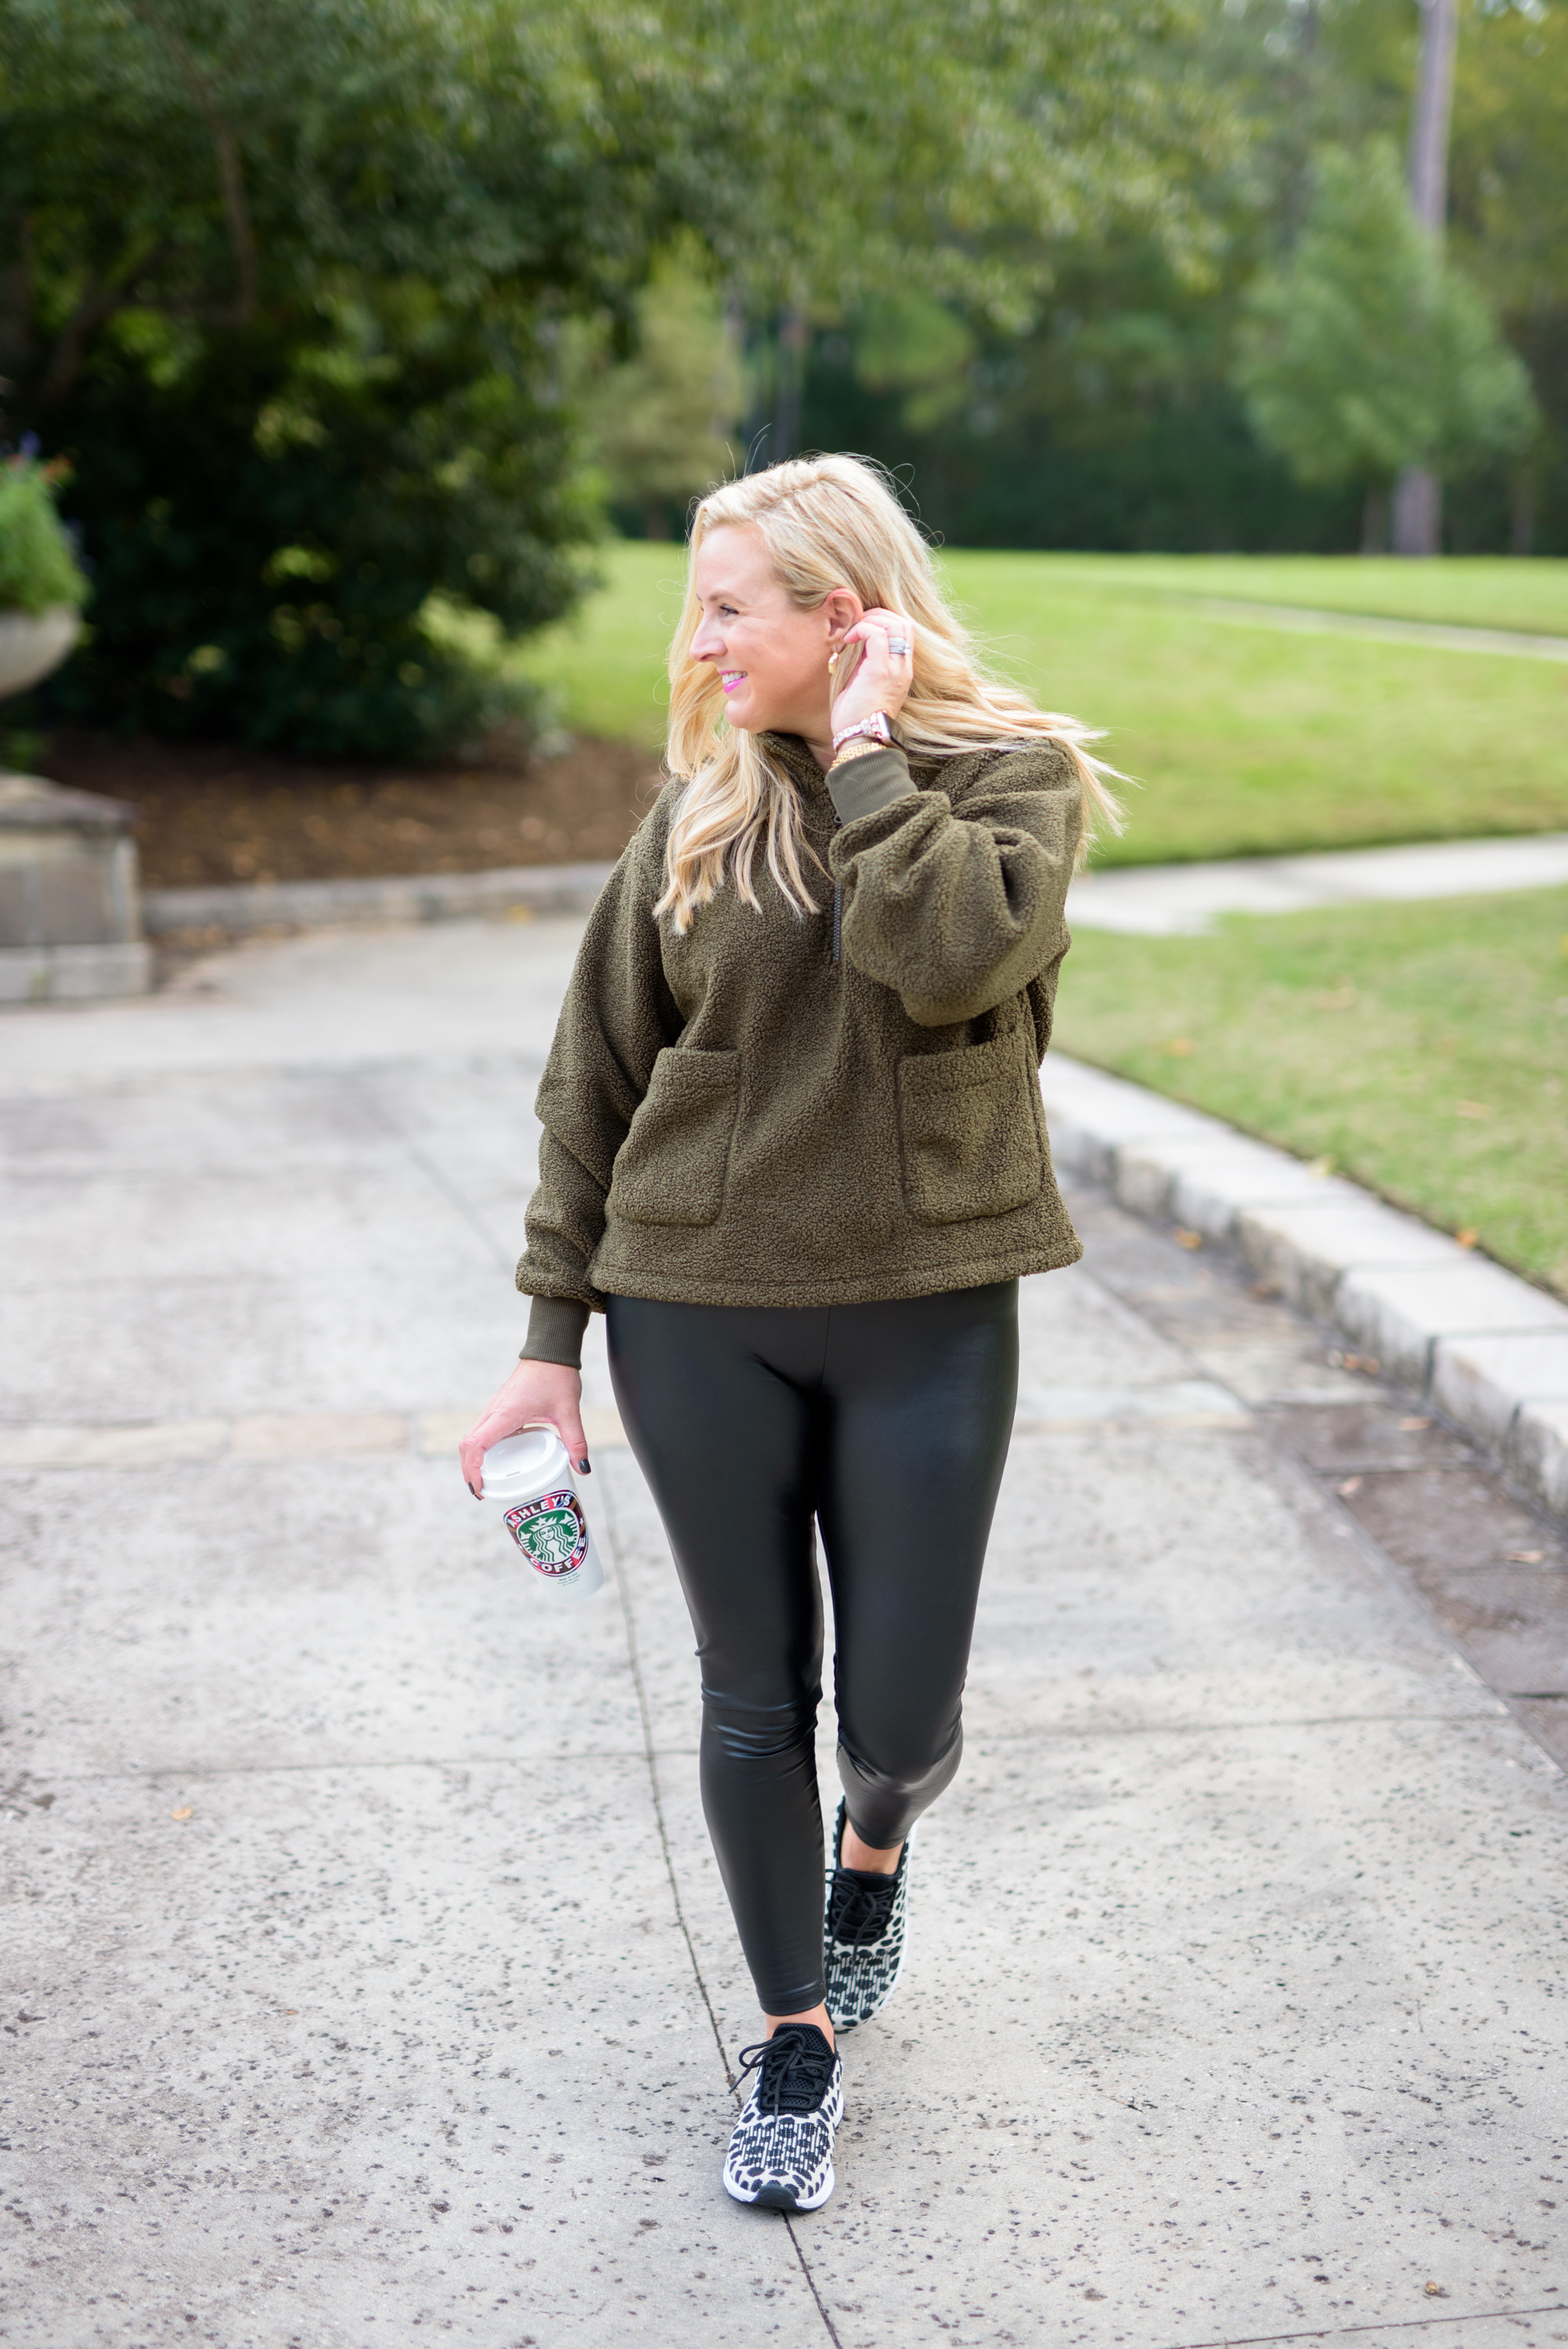 Faux Leather by popular Houston fashion blog, Fancy Ashley: image of a woman wearing a pair of faux leather leggings, sneakers, and a green fleece pull over.